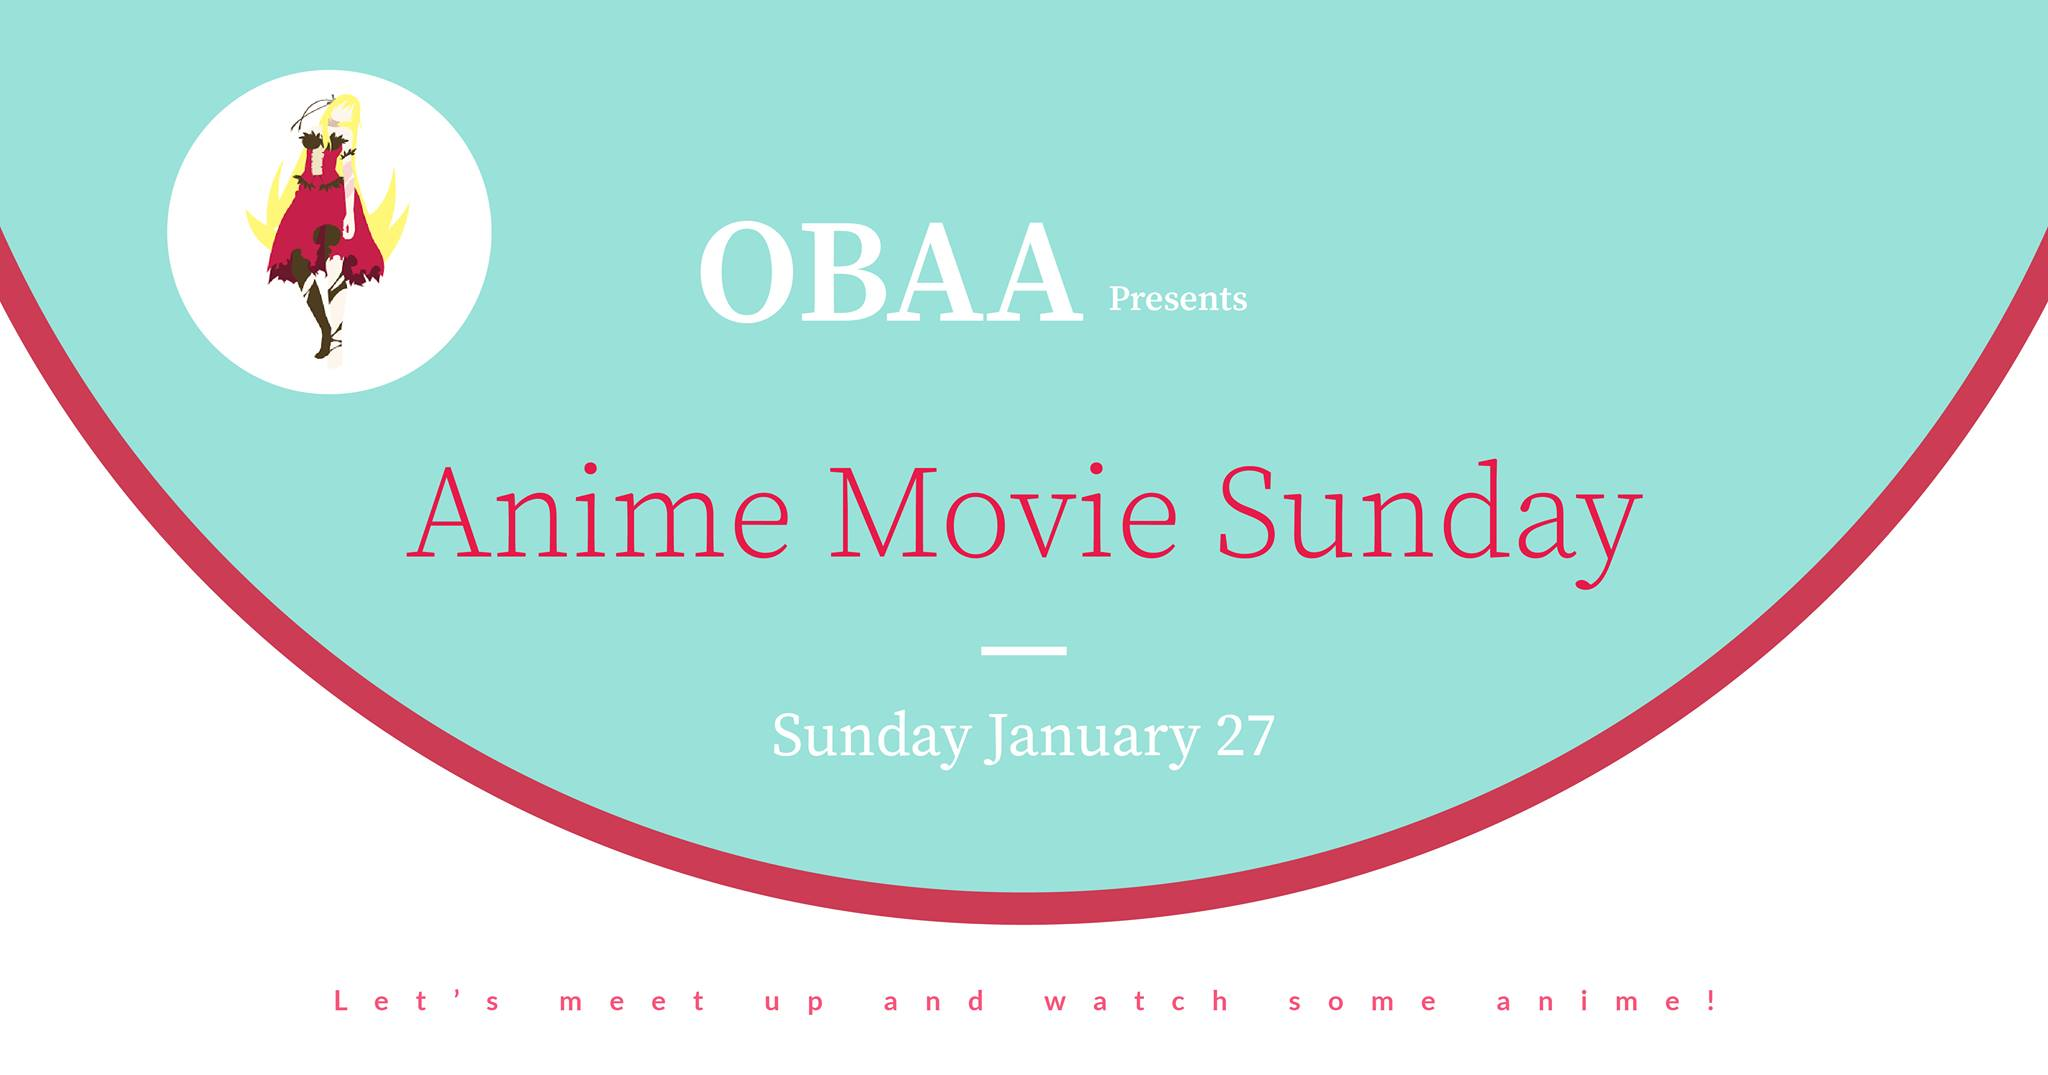 OBAA - Anime Movie Sunday 27.1.2019